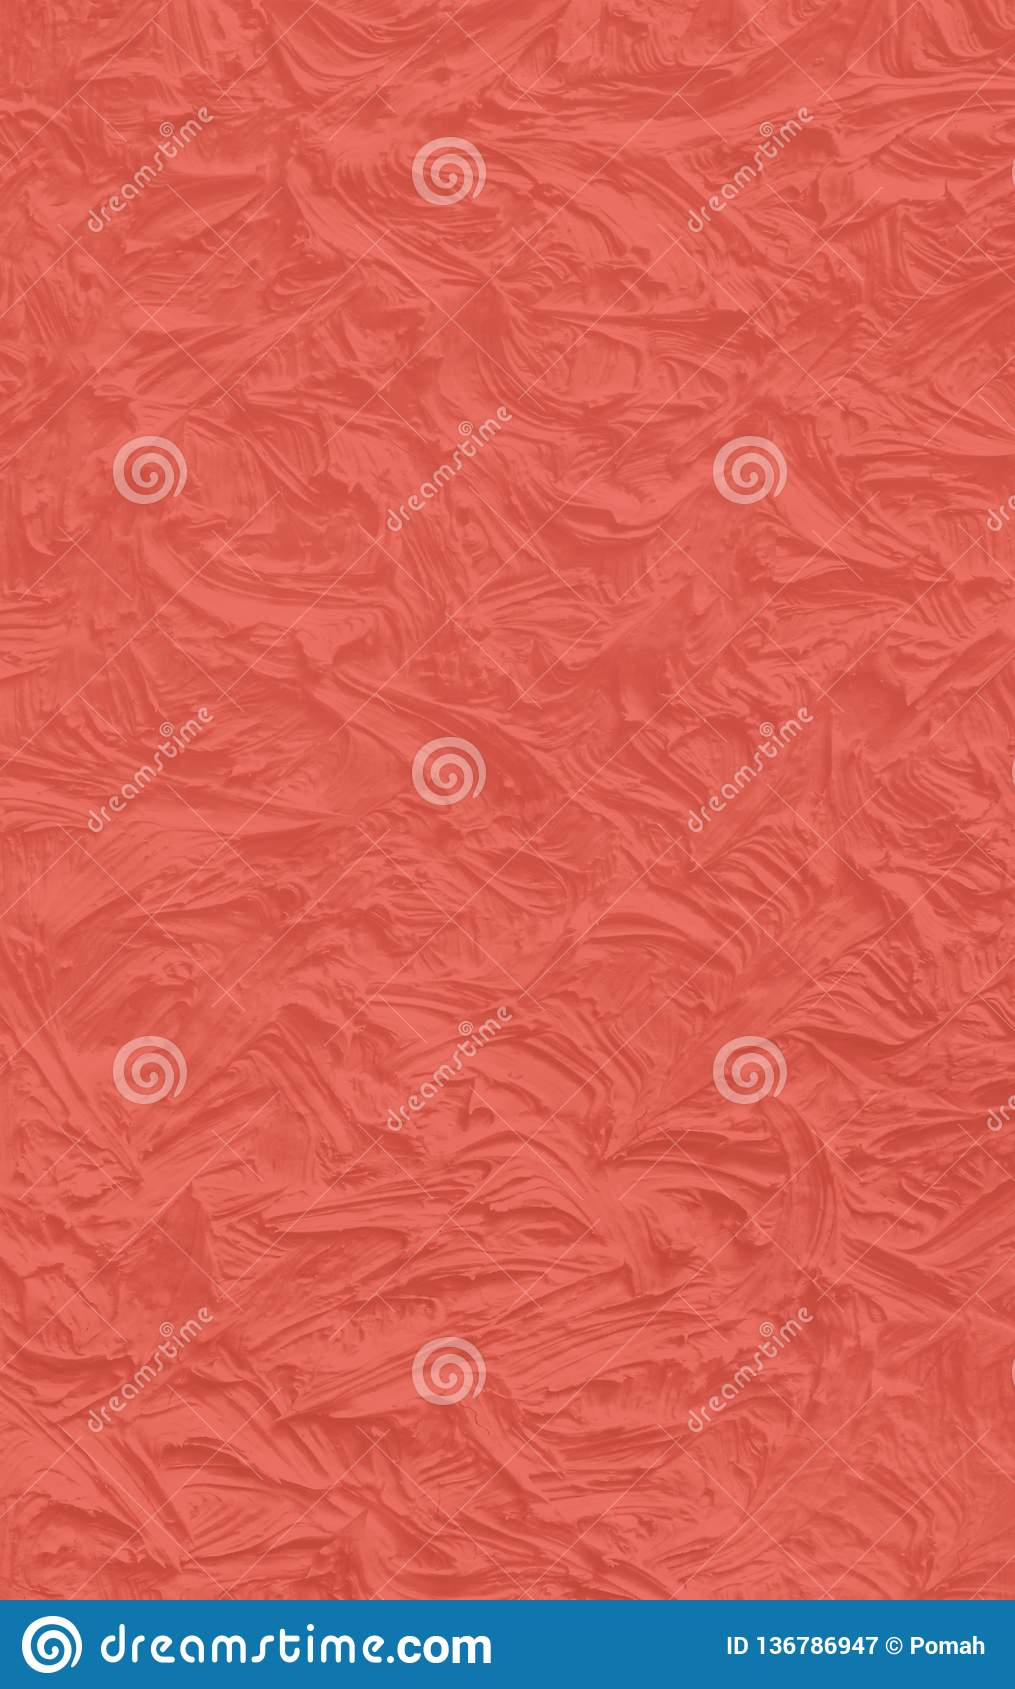 Living coral concrete texture. Trendy color of the Year 2019